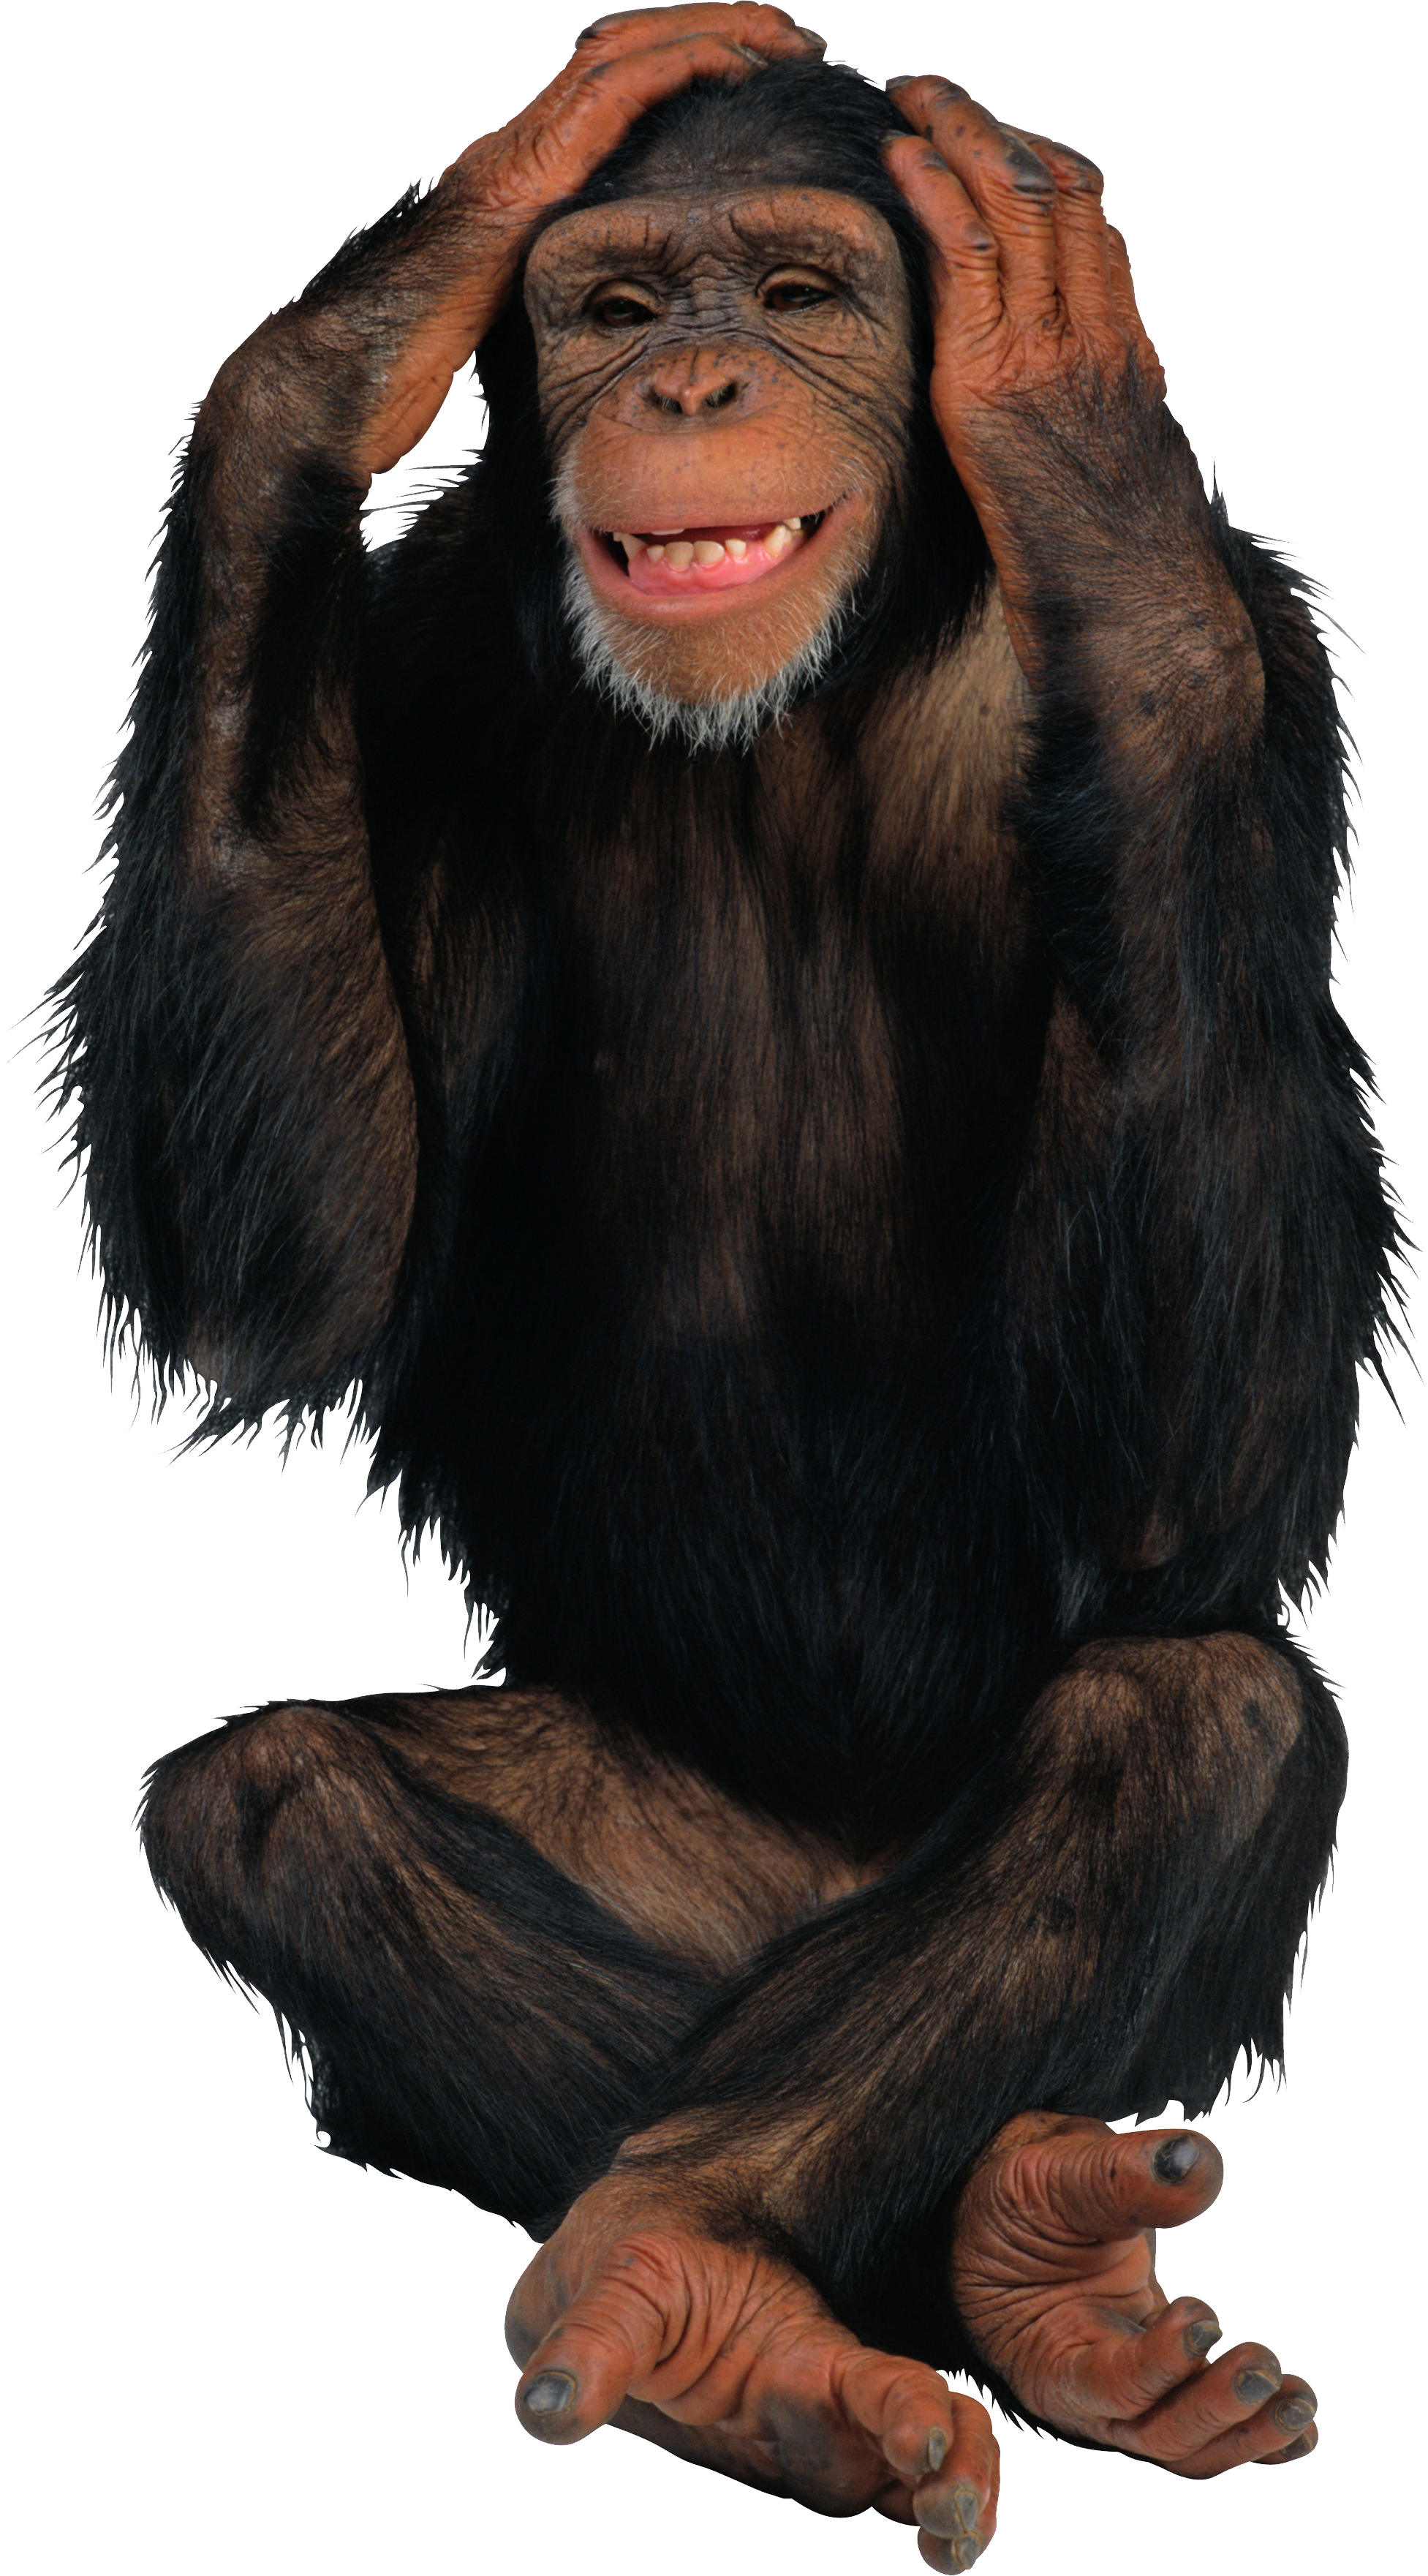 Monkey PNG Monkey face